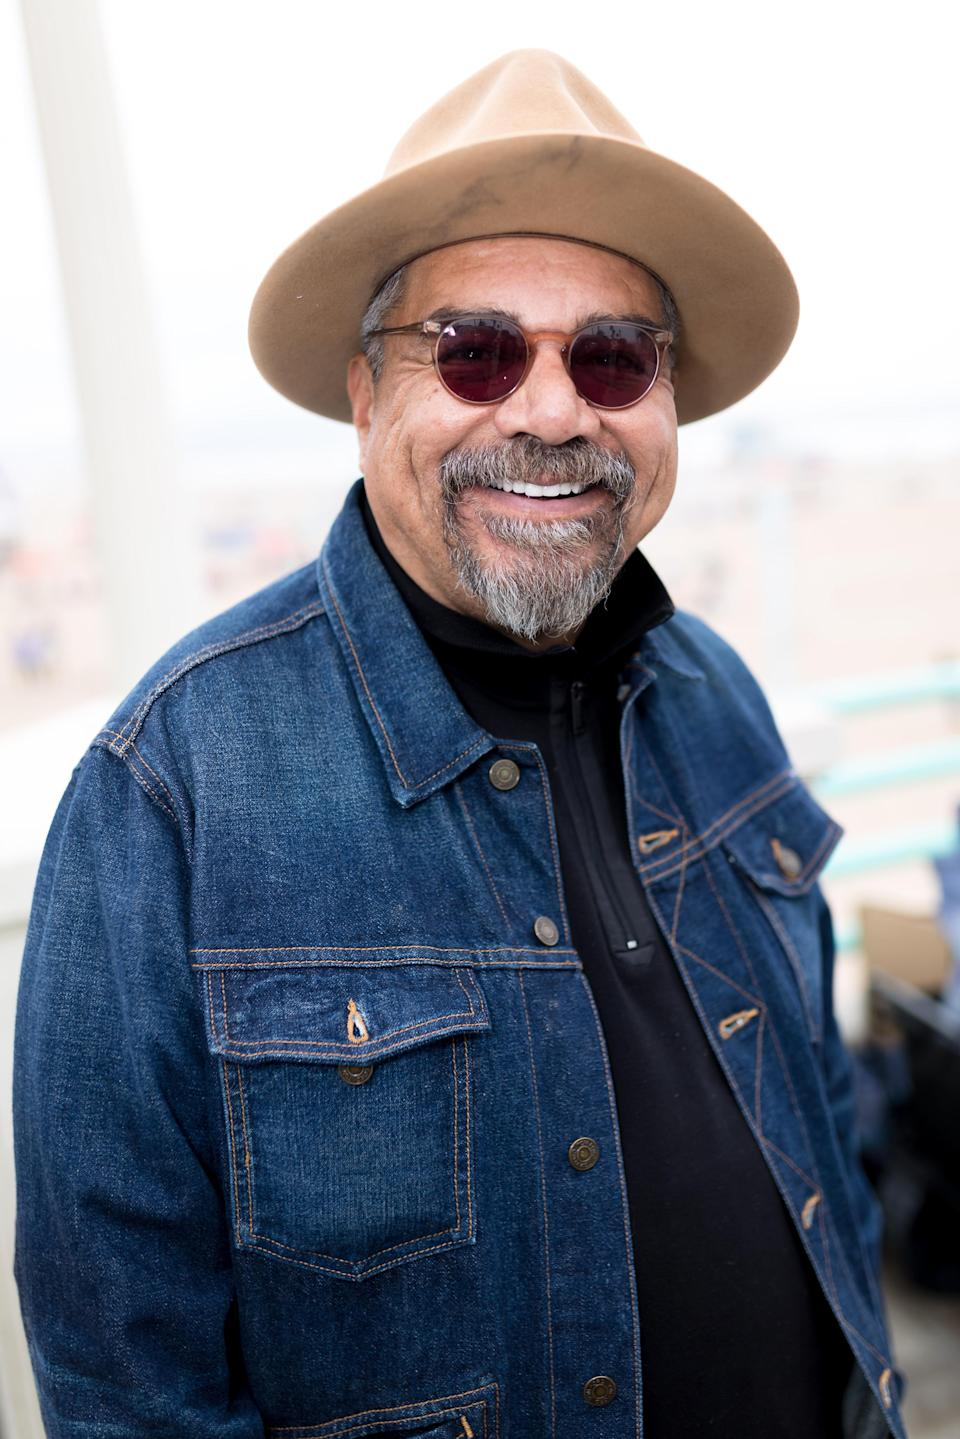 Comedian George Lopez is selling Melania Trump-inspired fashion. (Photo: Getty Images)